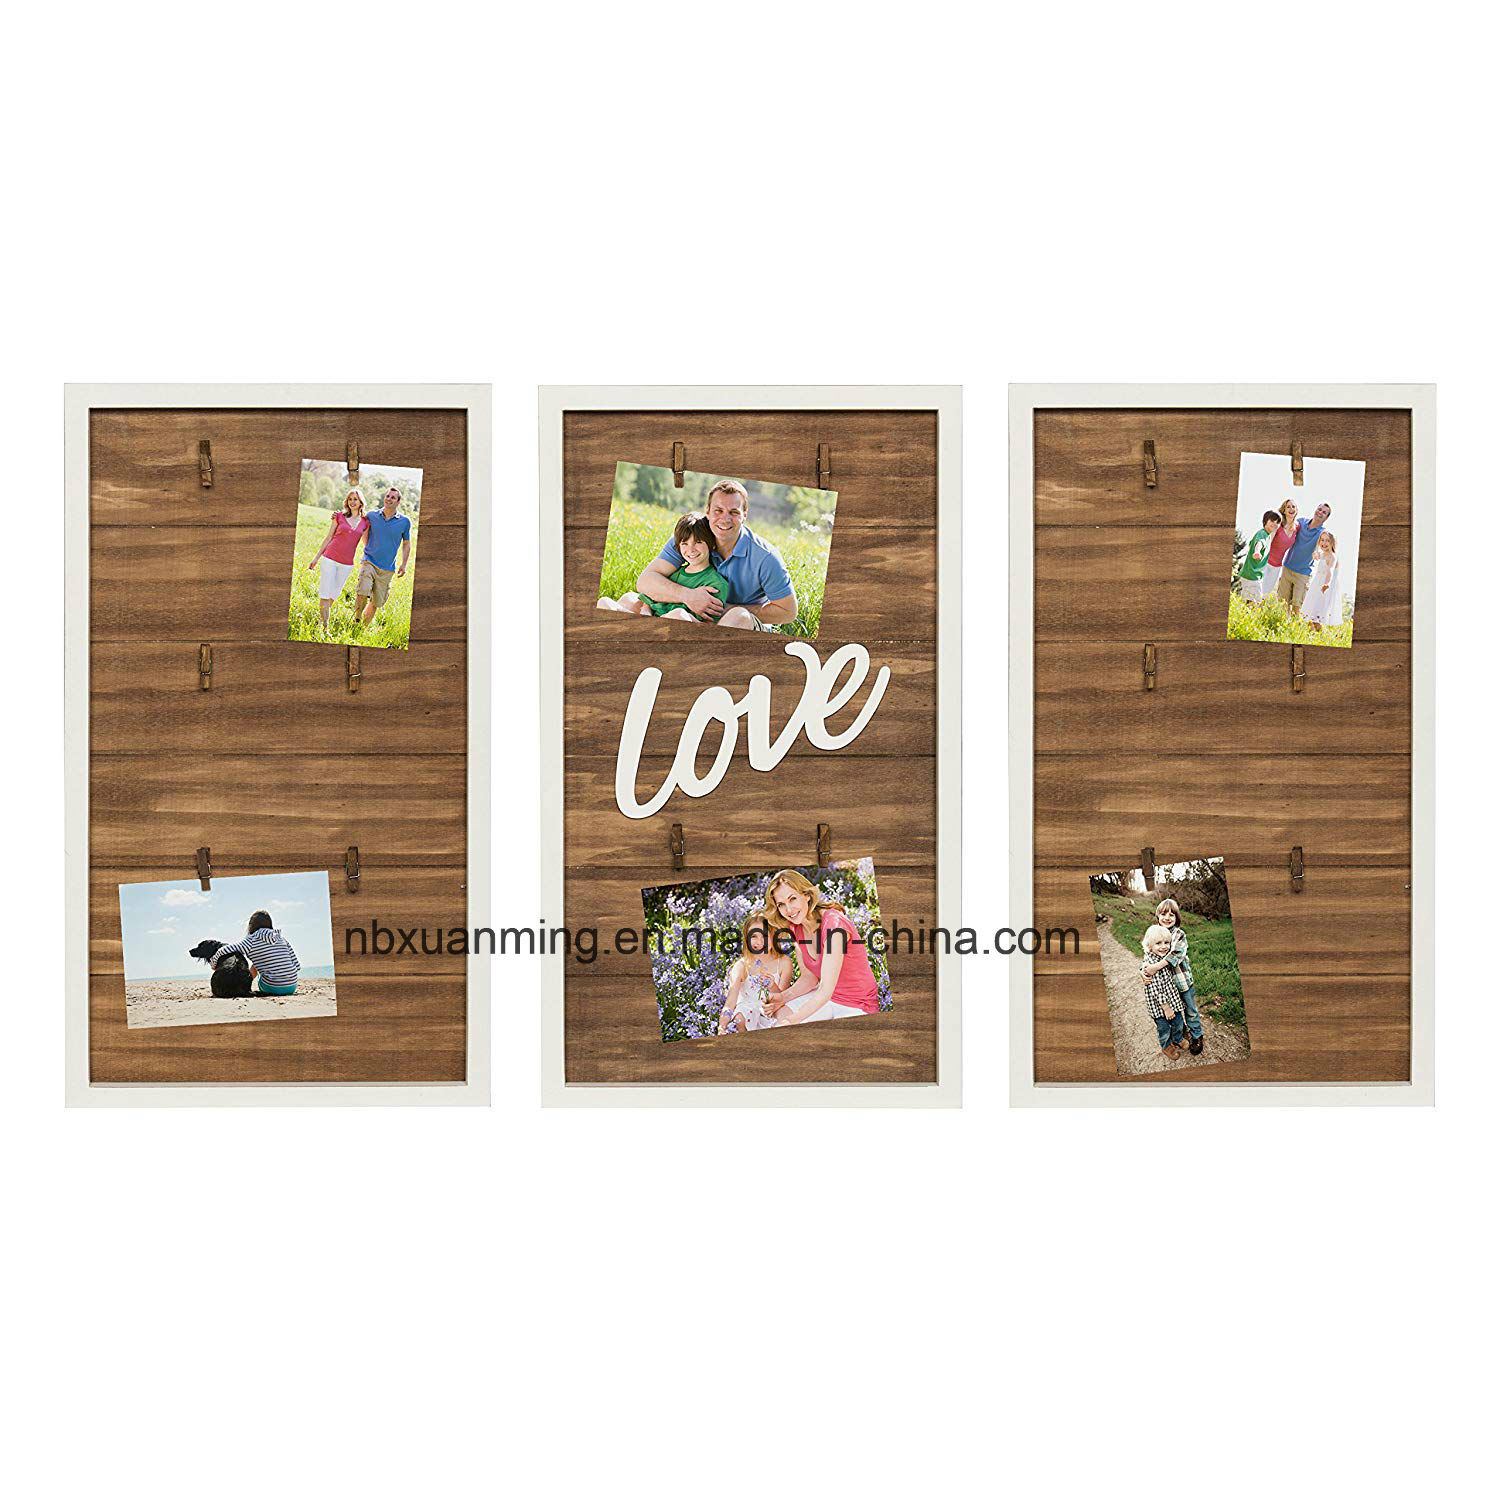 Wall Decor Wooden Hot Item Love Wood 3 Piece Clip Photo Collage Photo Frame Picture Frame Wall Decor Home Decoration Wooden Wall Plaque